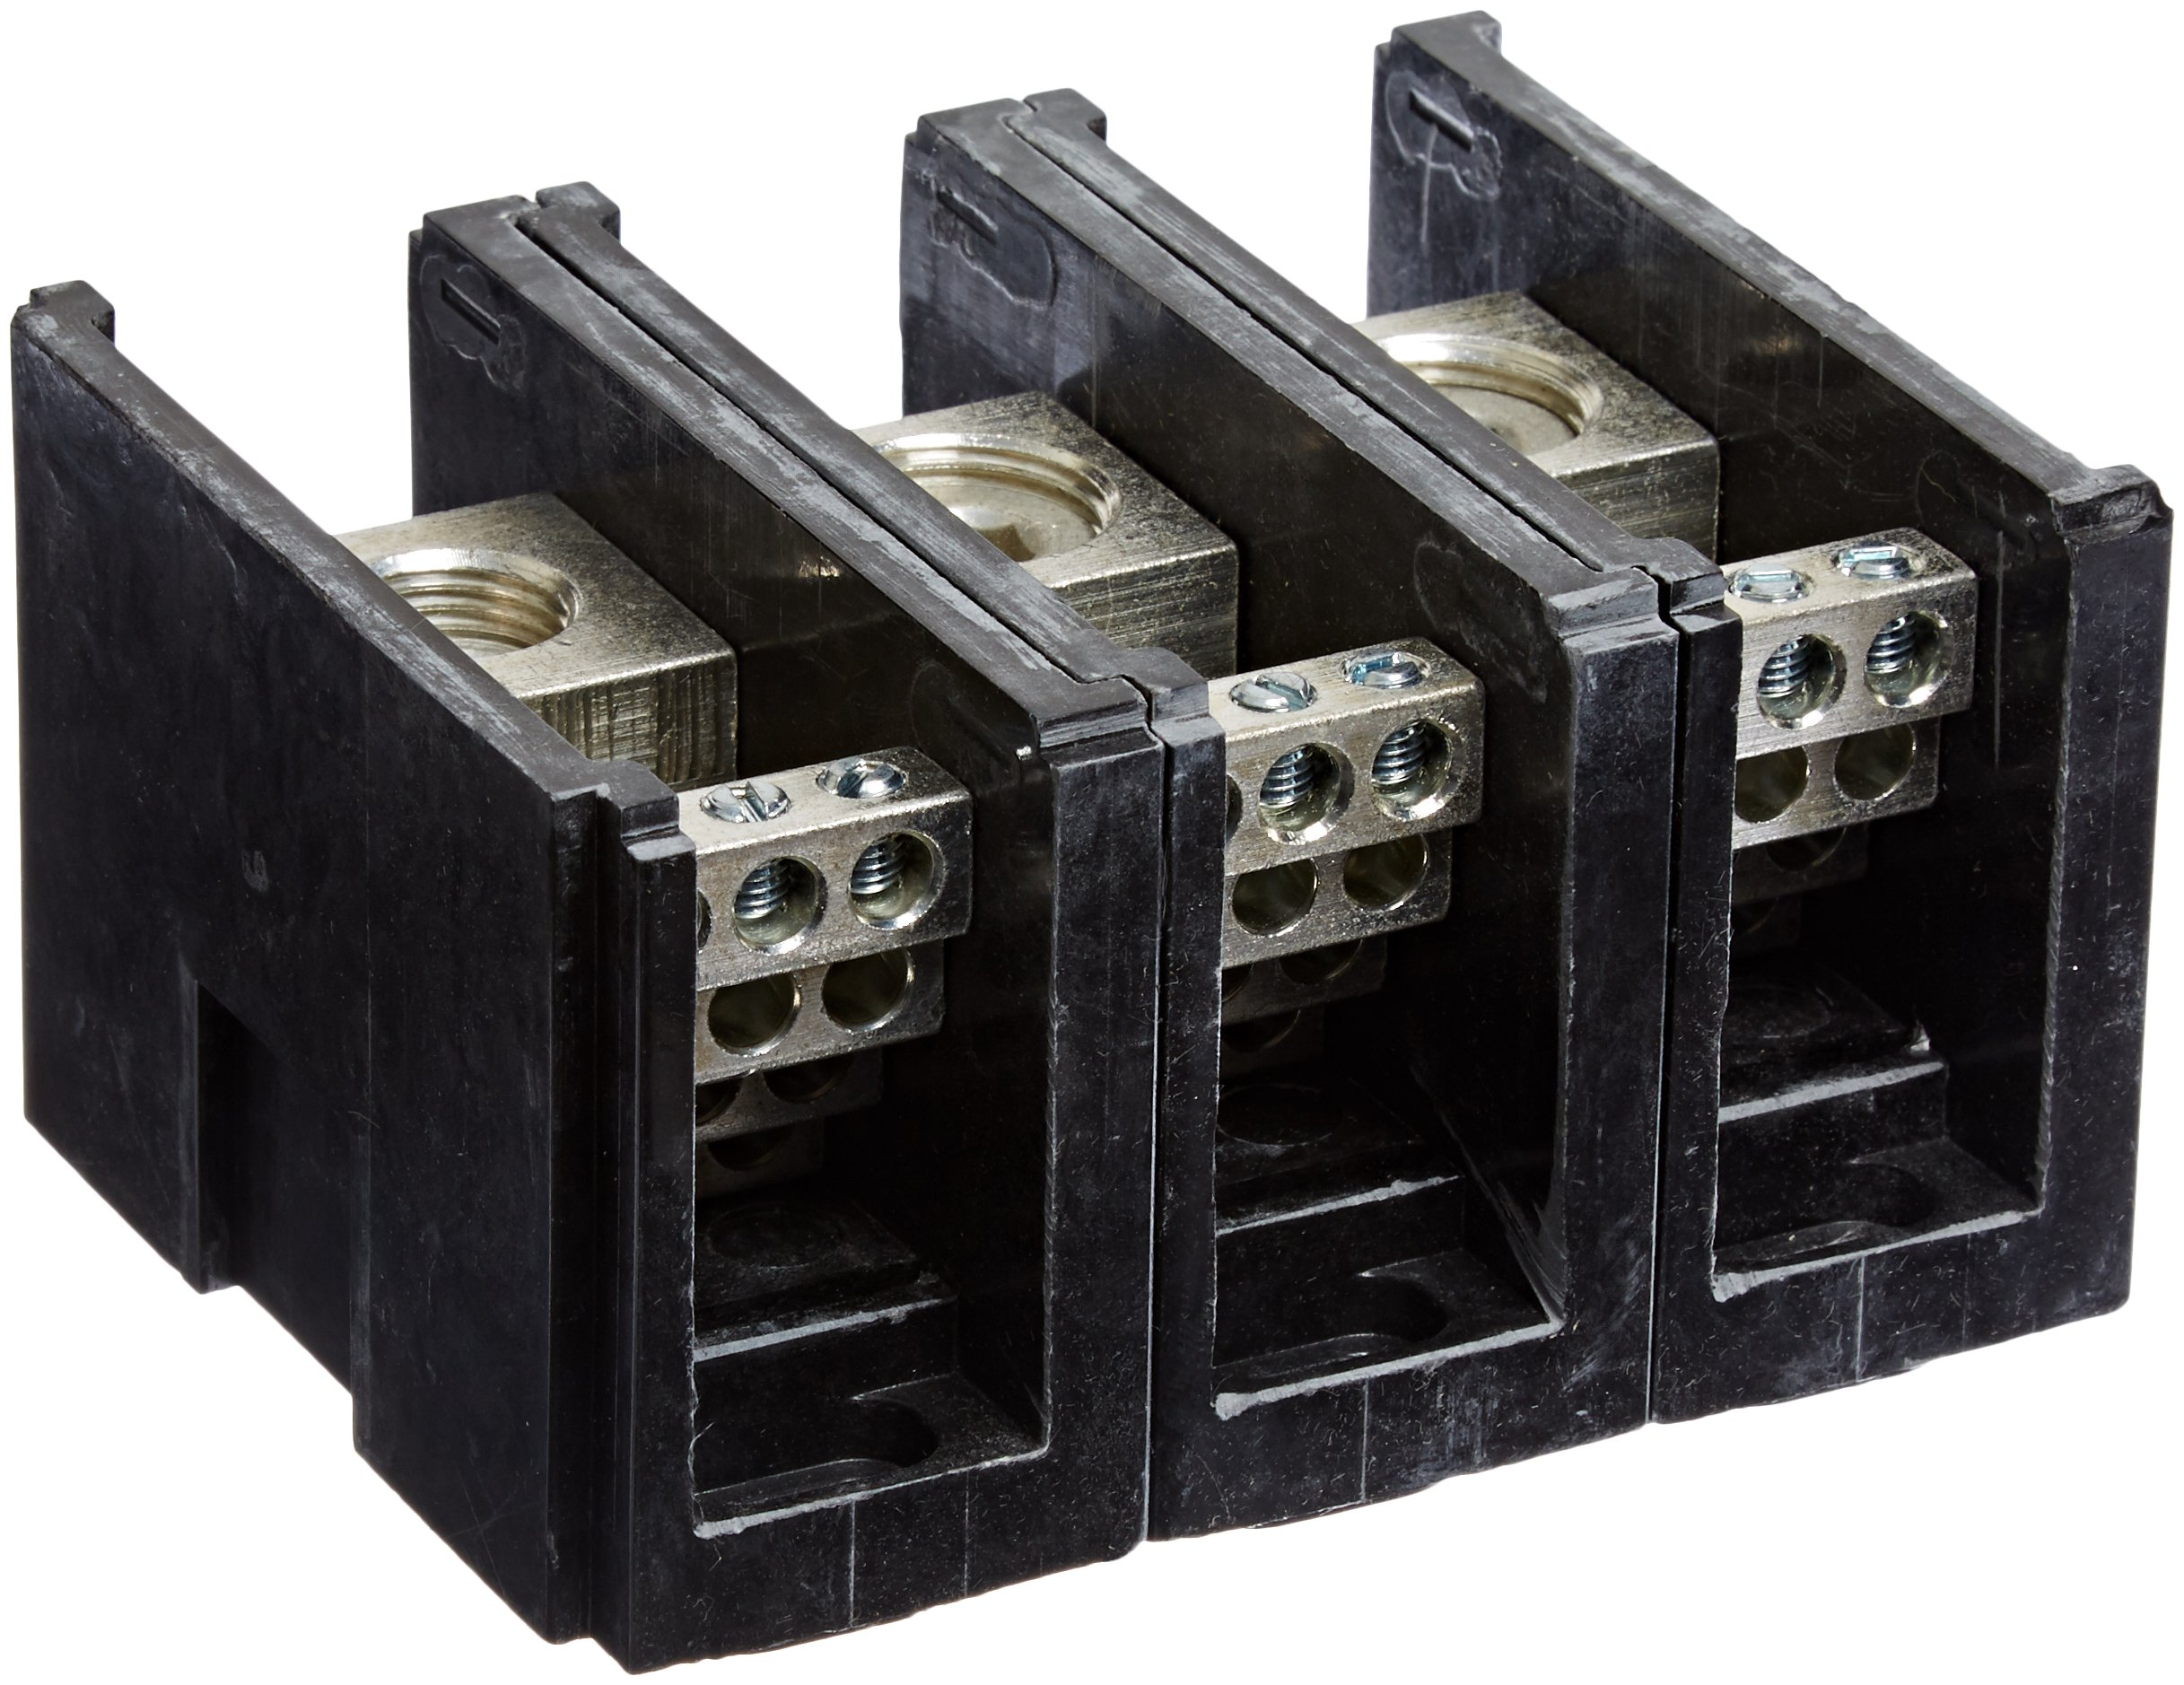 Power Distribution and Terminal Block, Connector Blok - Single Primary - Multiple Secondary, 500MCM-4 AWG Line and 4-14 AWG Load Side Configuration, 1.71'' Width, 2.62'' Height, 4.00'' Length by NSI